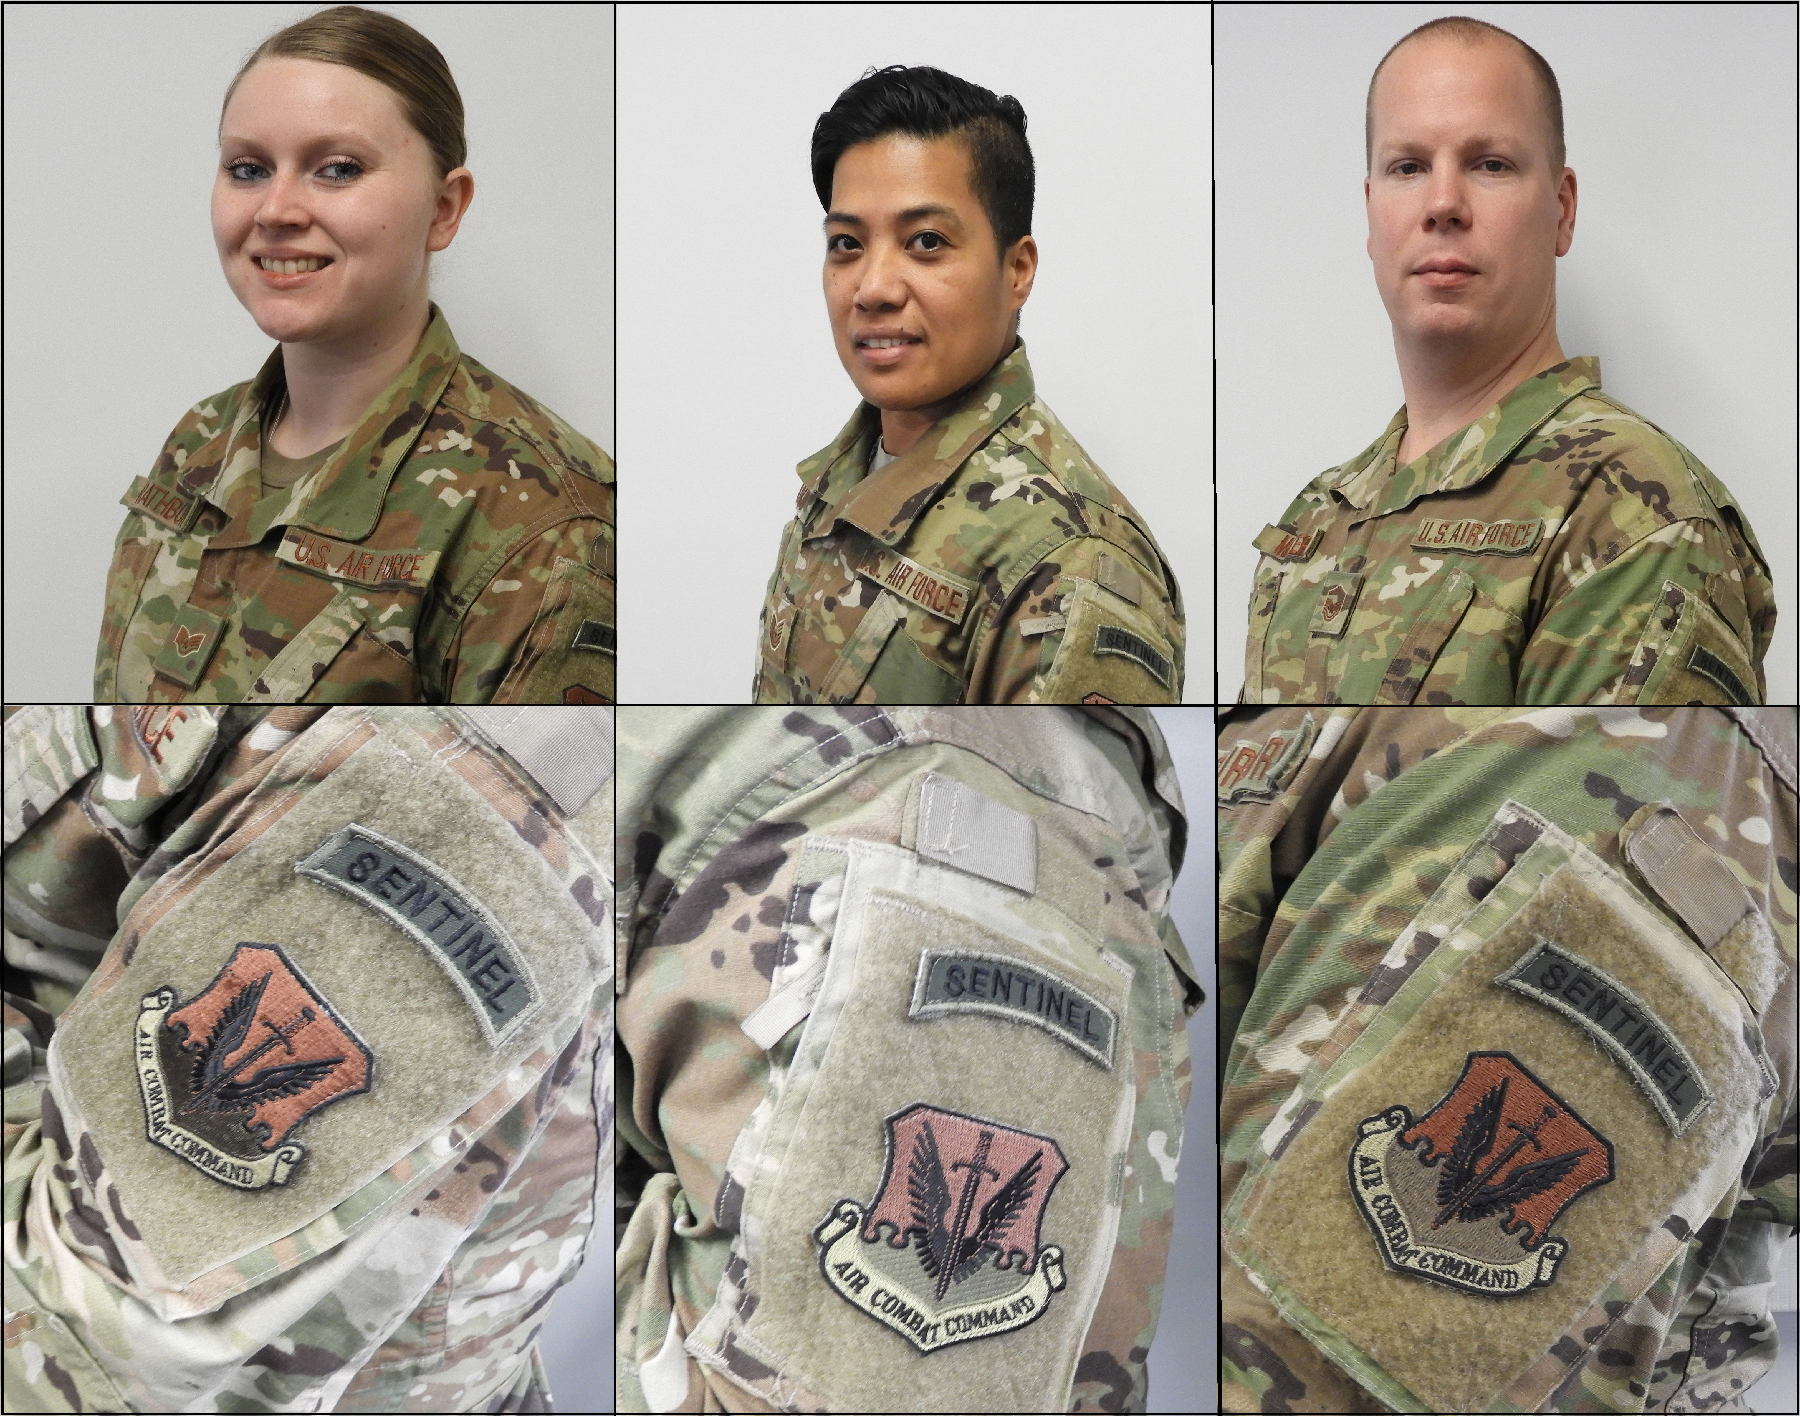 Head-and-shoulders photos of two women and one man wearing disruptive pattern uniforms; below these are photos of their respective shoulder patches.